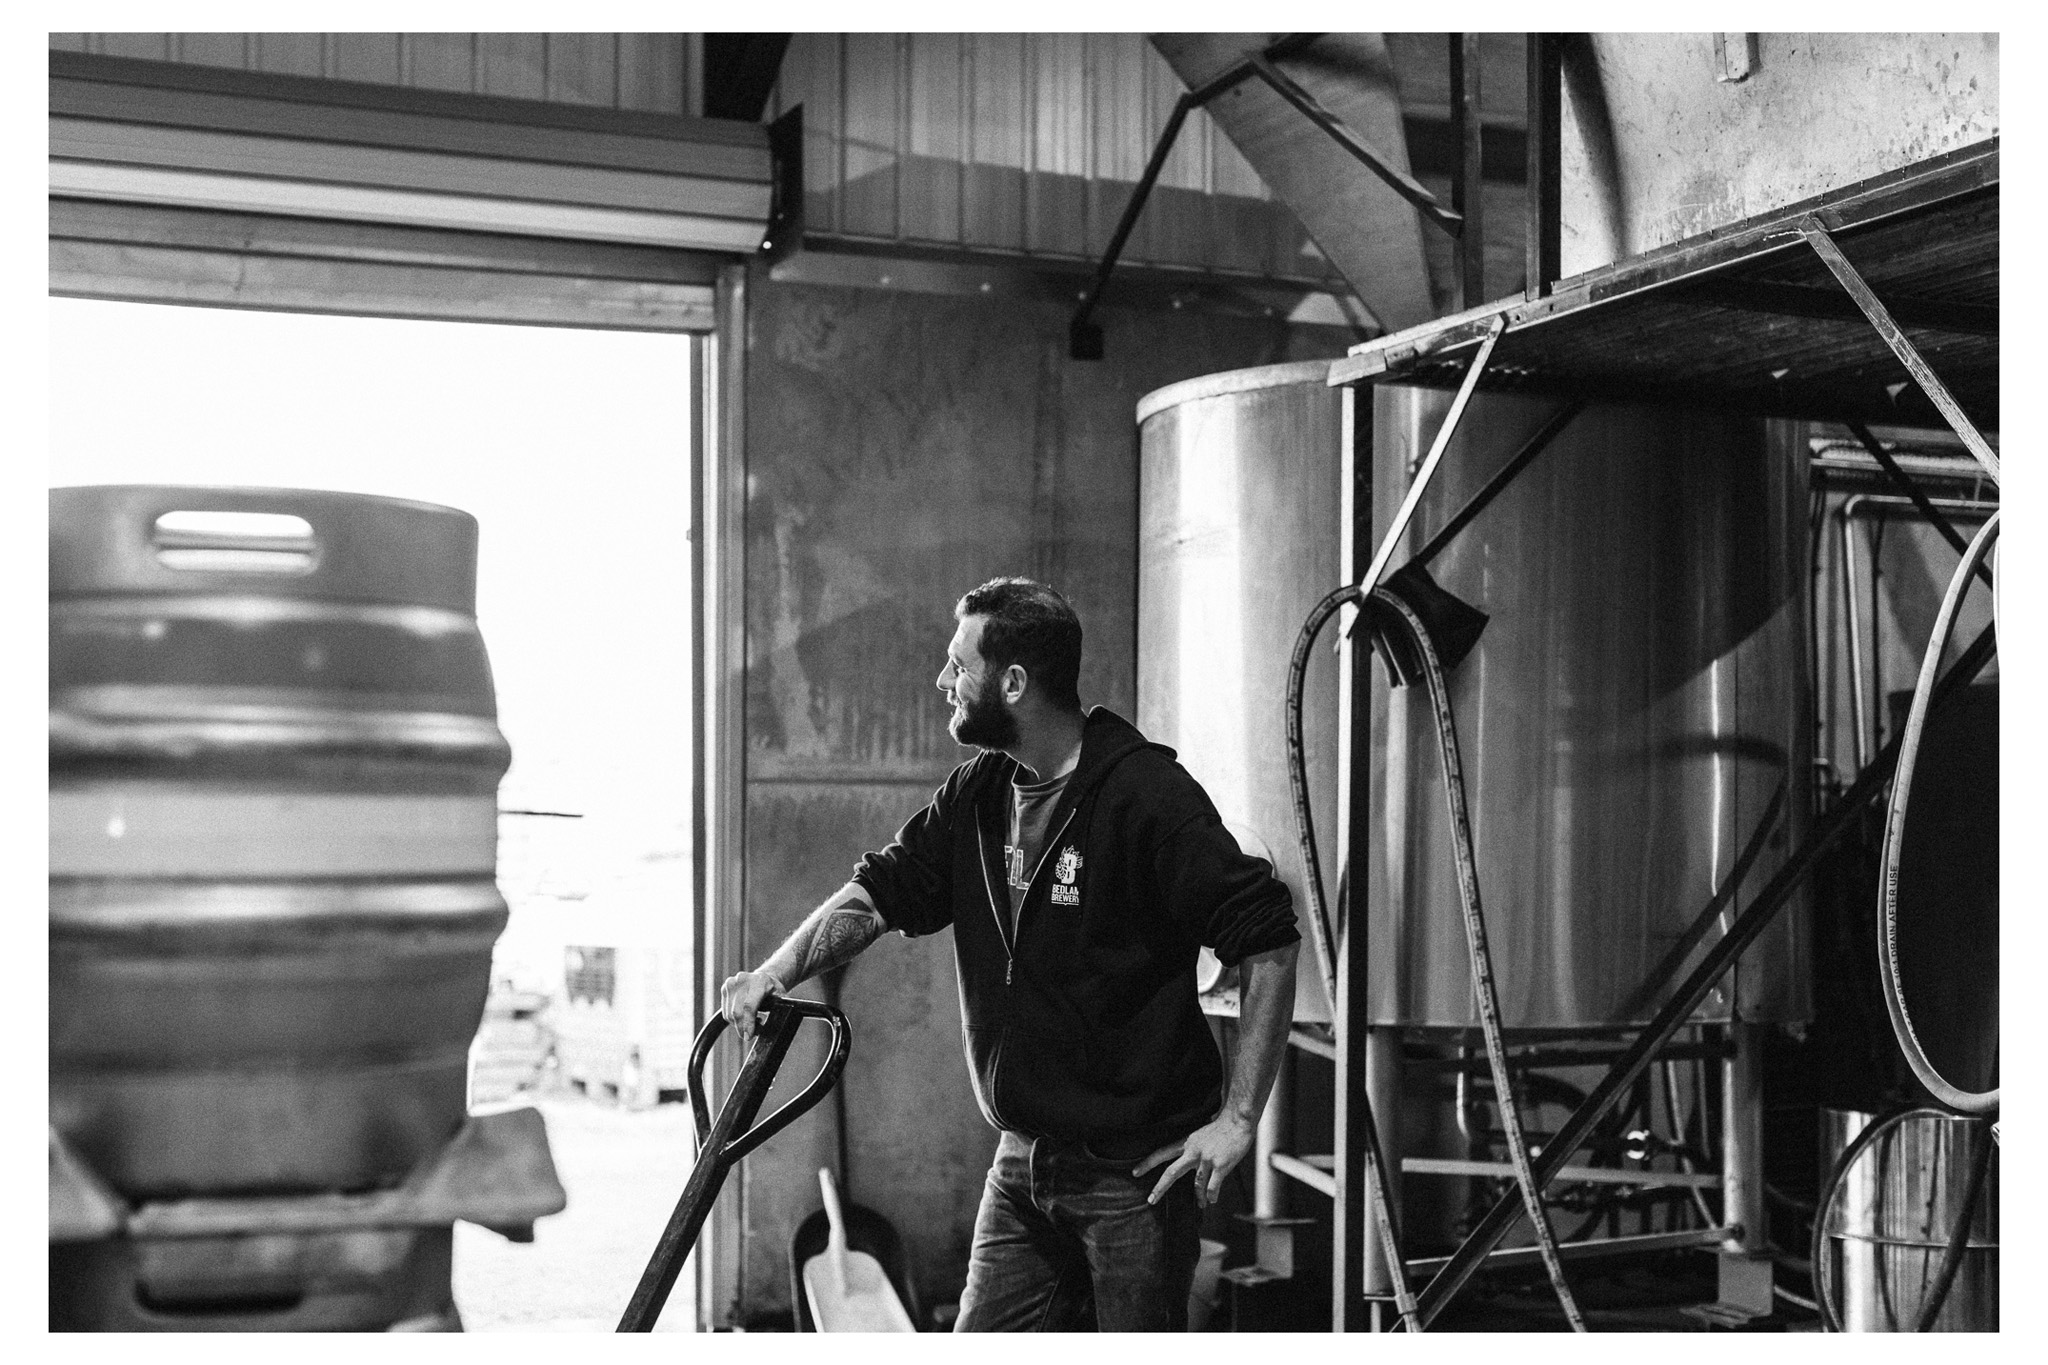 Sussex brewery photography